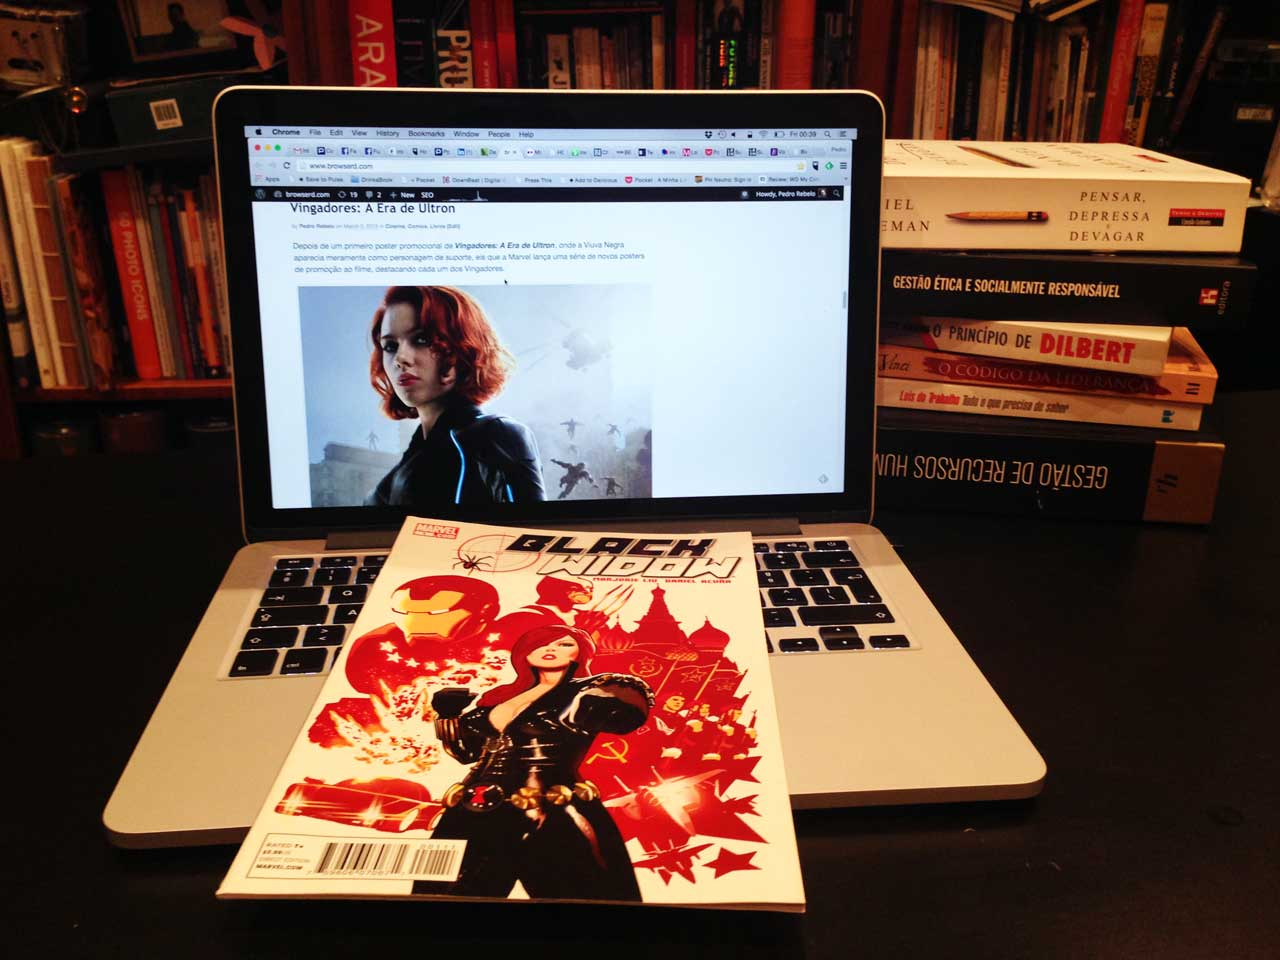 Black Widow Vol 4 #1 Pedro Rebelo